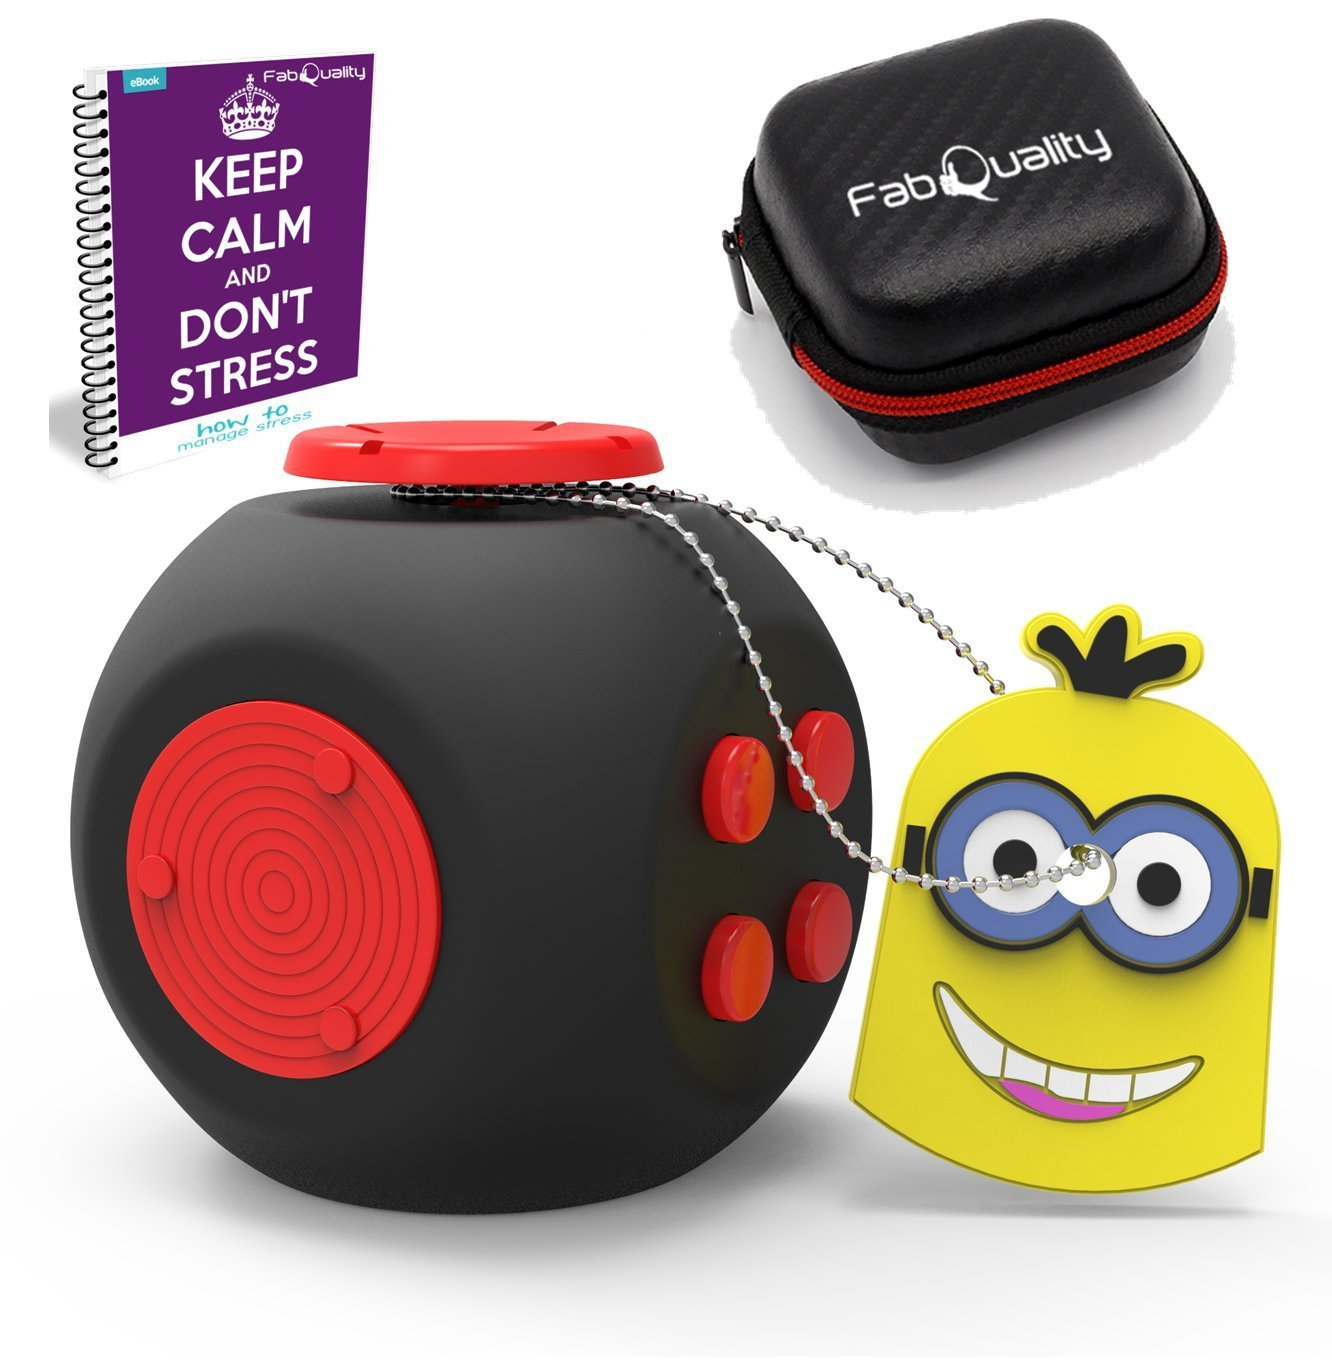 SPECIAL OFFER FIDGET CUBE New BIG Improved Cube Quality Anxiety Attention Toy With BONUS eBook inc + Minion Key Chain - Relieves Stress And Anxiety And Relax for Children + Adults BONUS EBOOK